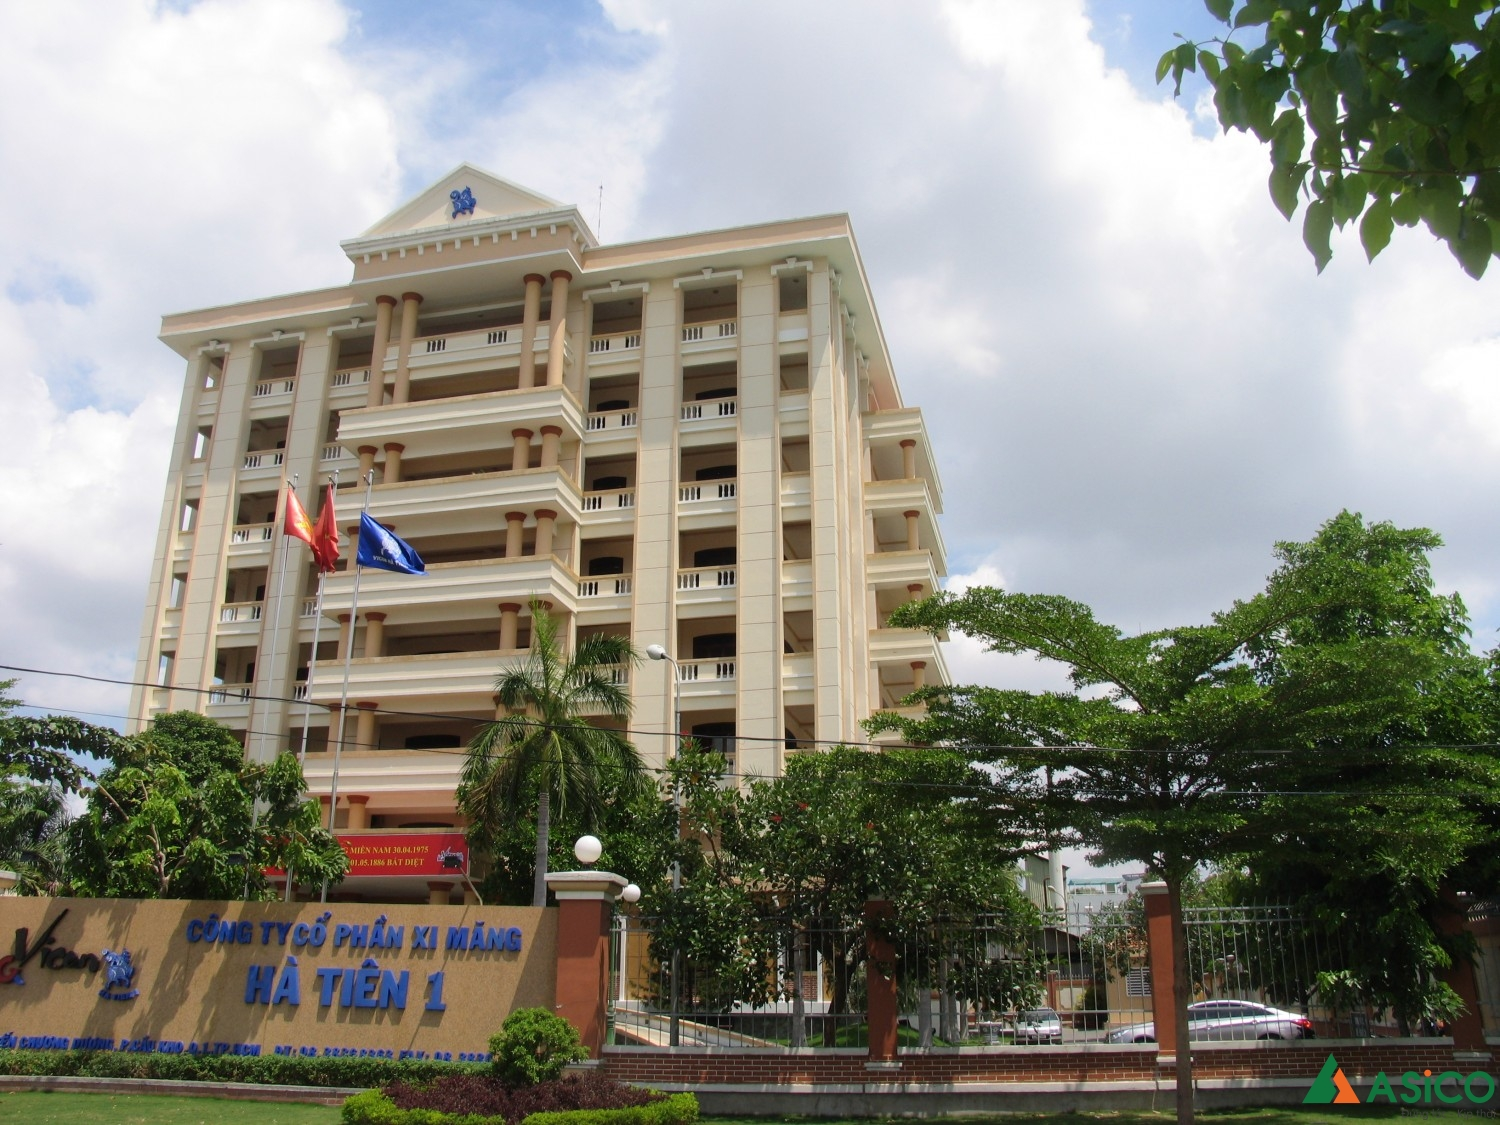 Head Office of Ha Tien 1...